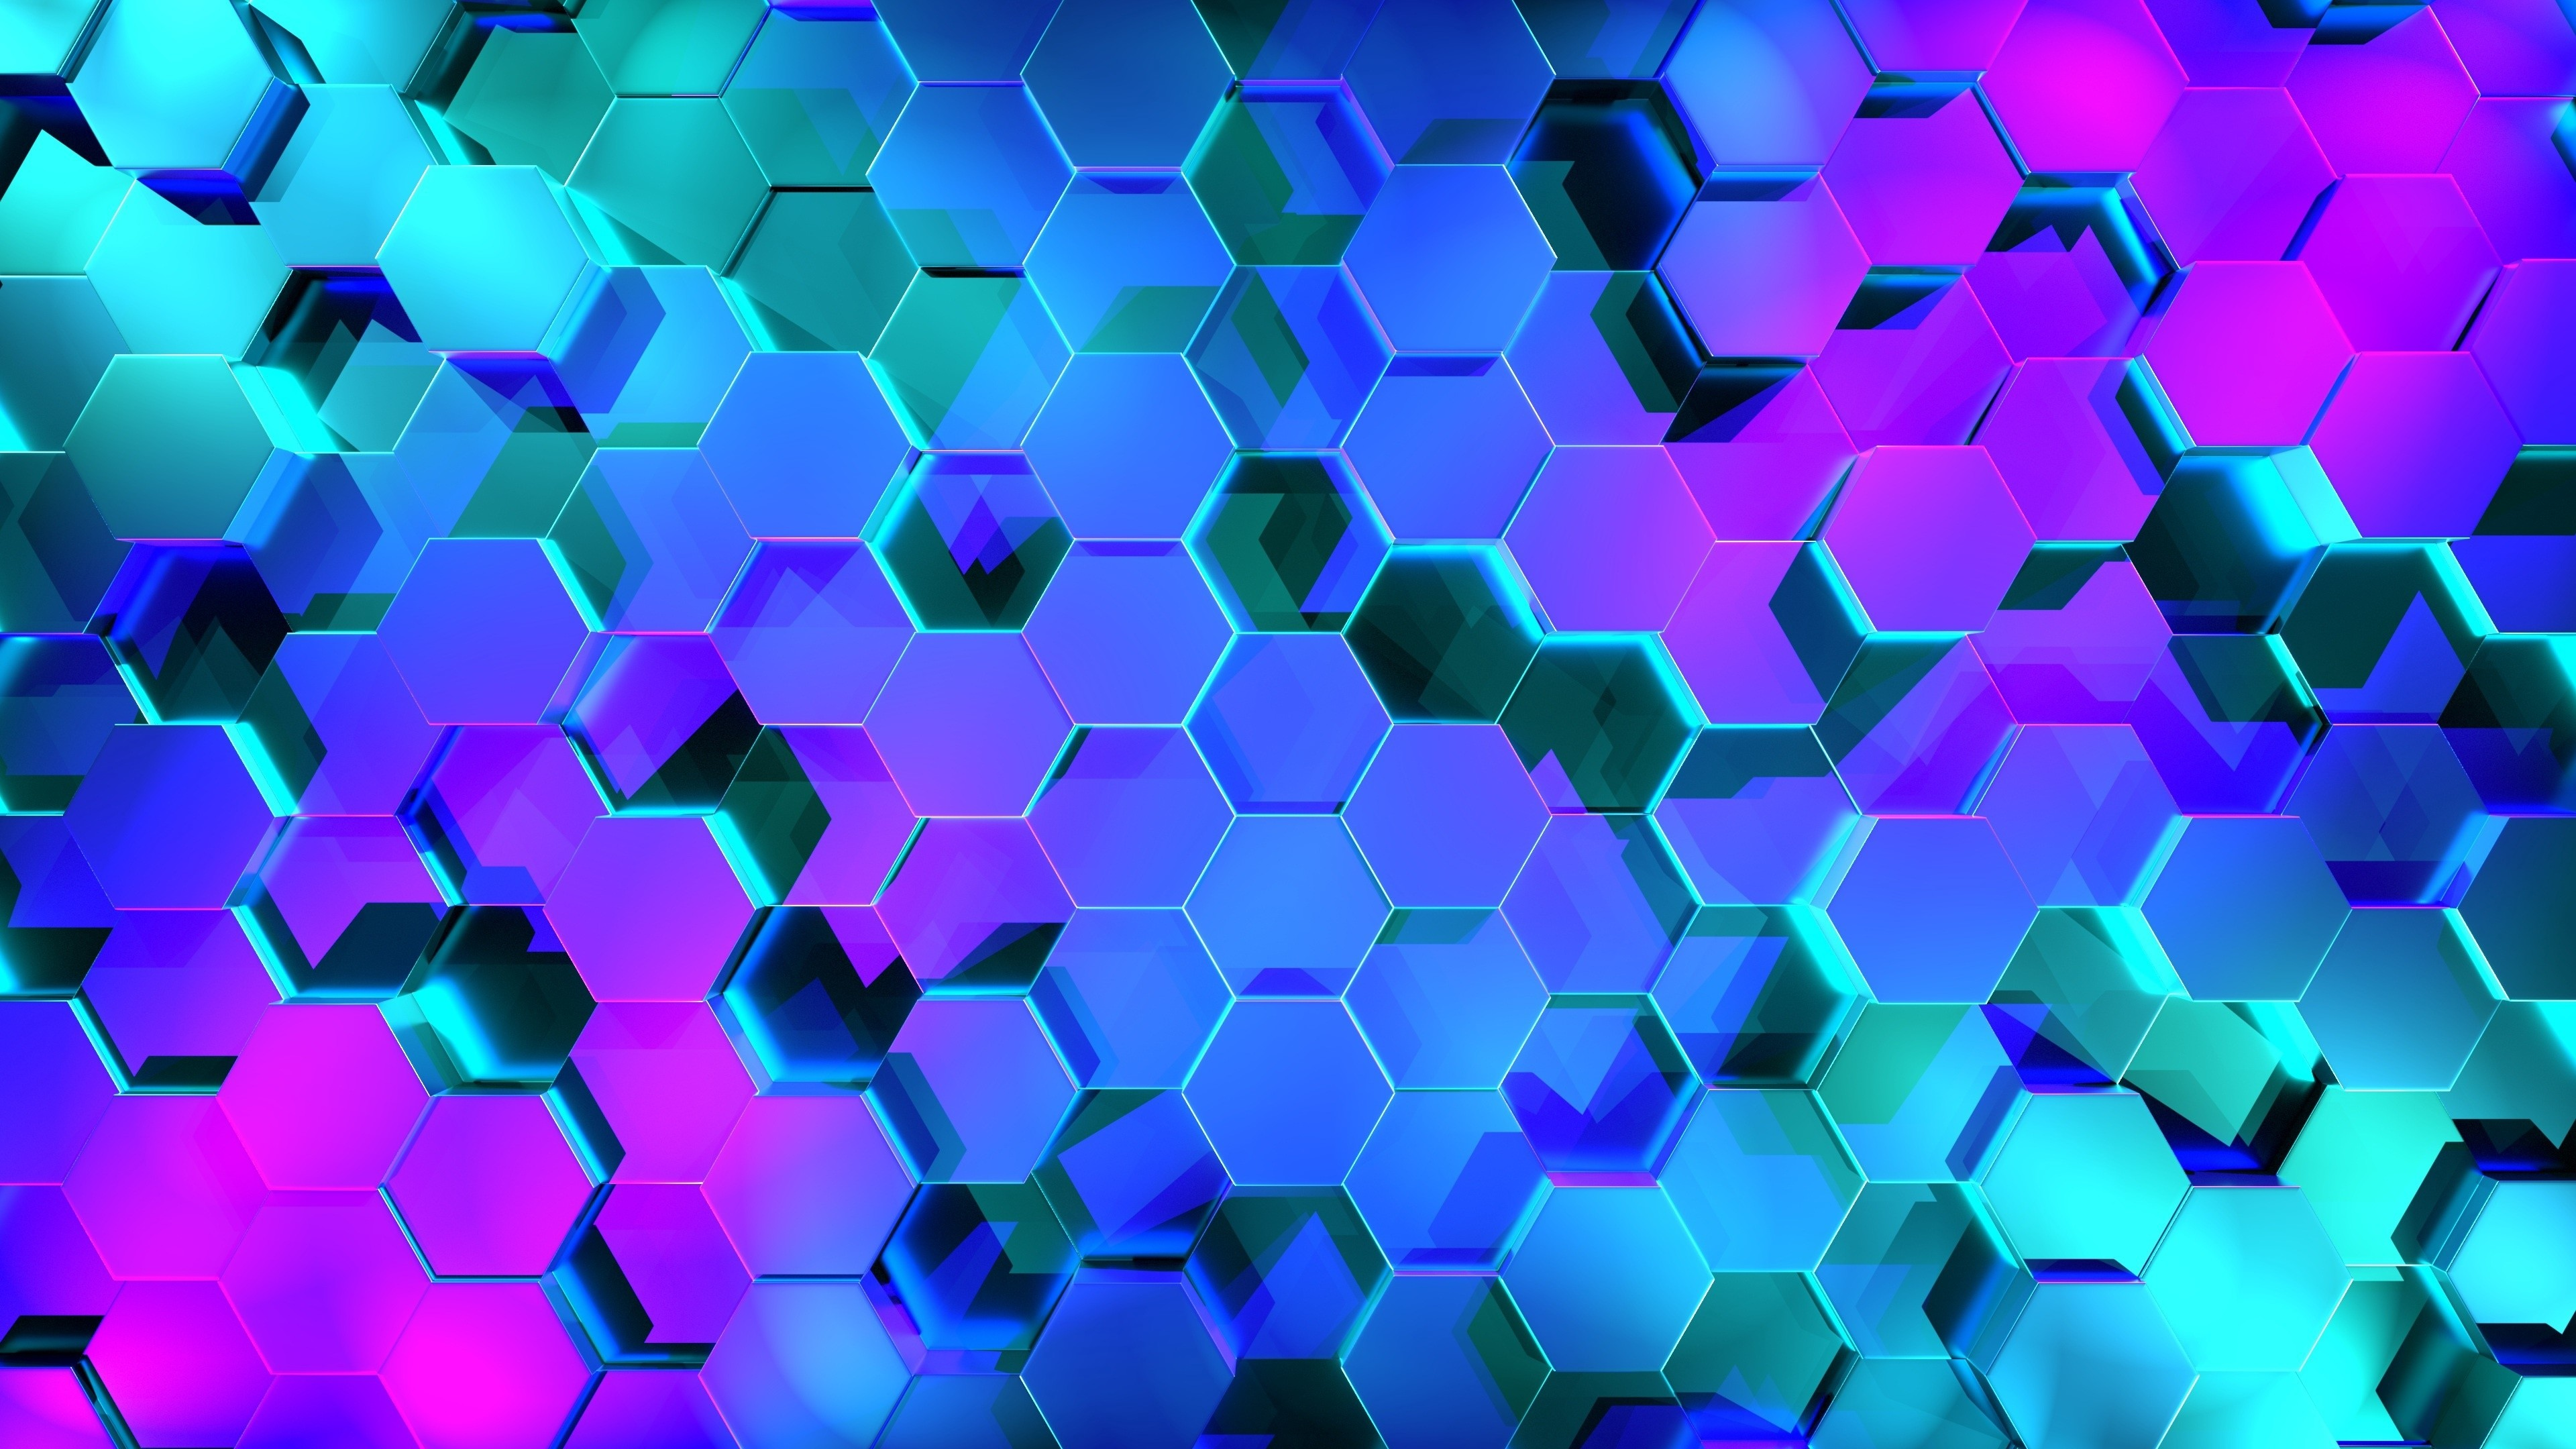 Res: 3840x2160, 3D Honeycomb Pattern Wallpaper | Wallpaper Studio 10 | Tens of thousands HD  and UltraHD wallpapers for Android, Windows and Xbox